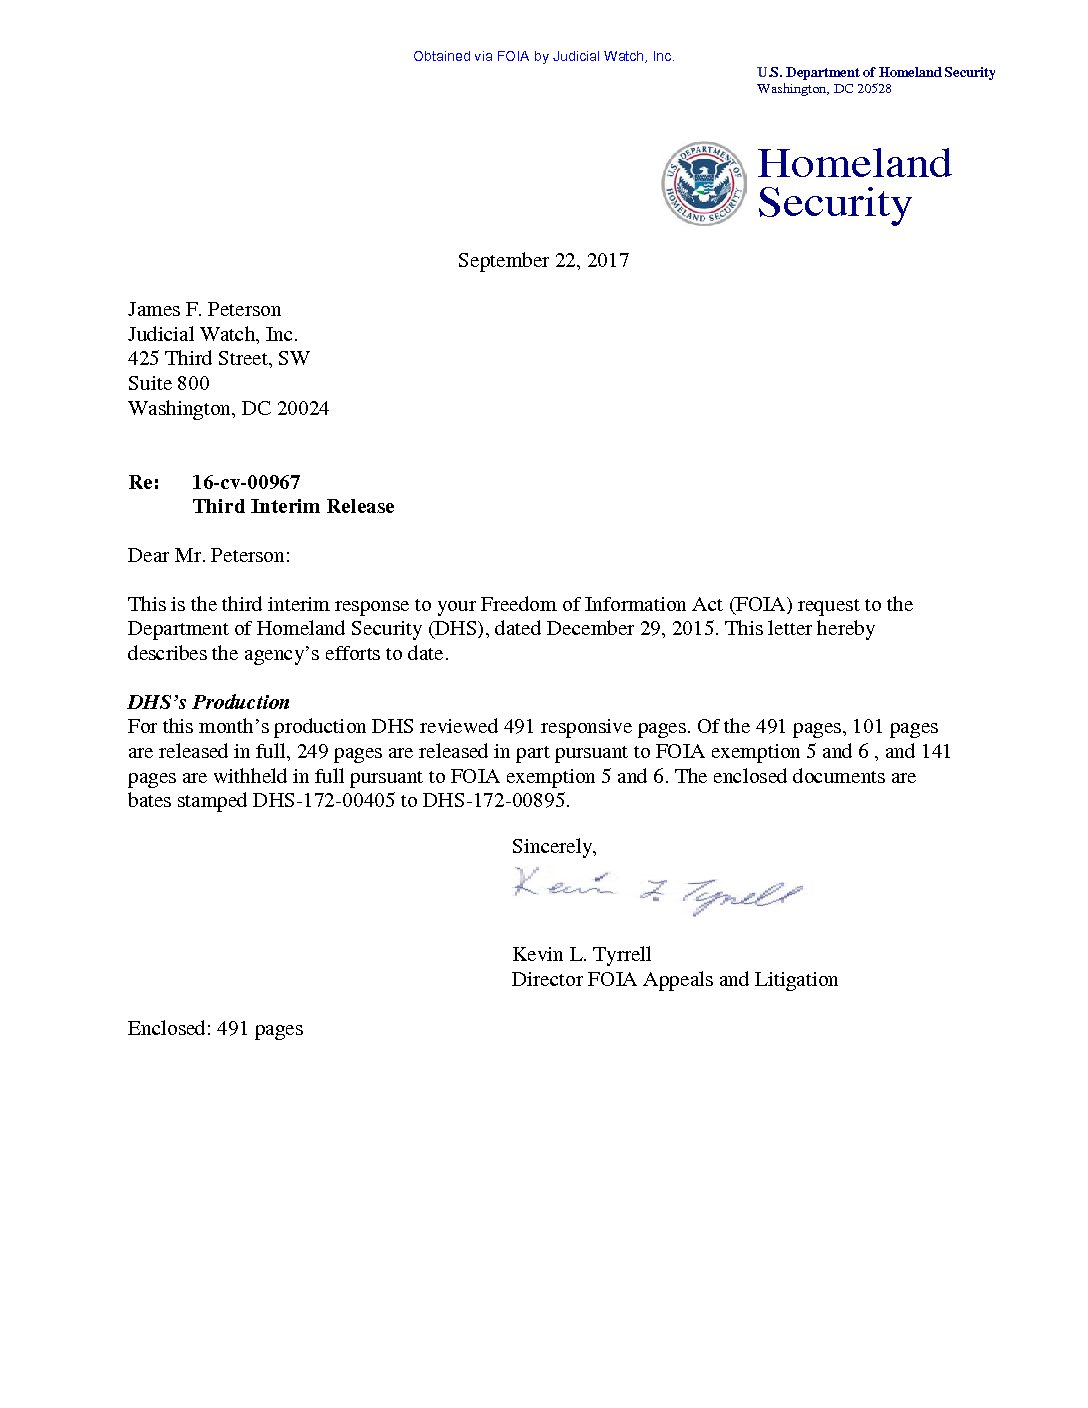 Dhs Personal assistant Job Description - Homeland Security